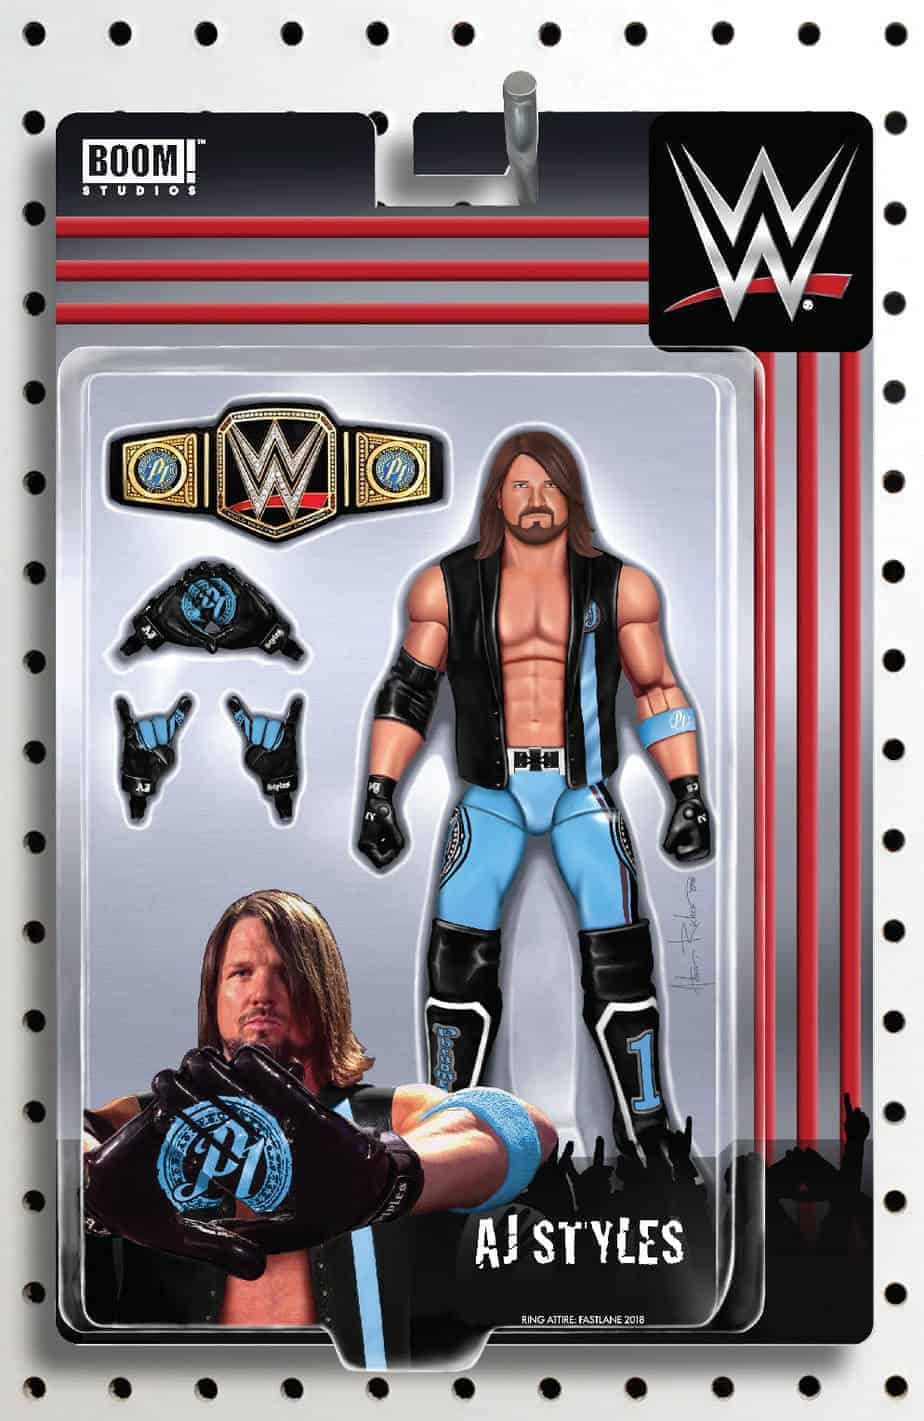 WWE #23 - Action Figure Variant Cover